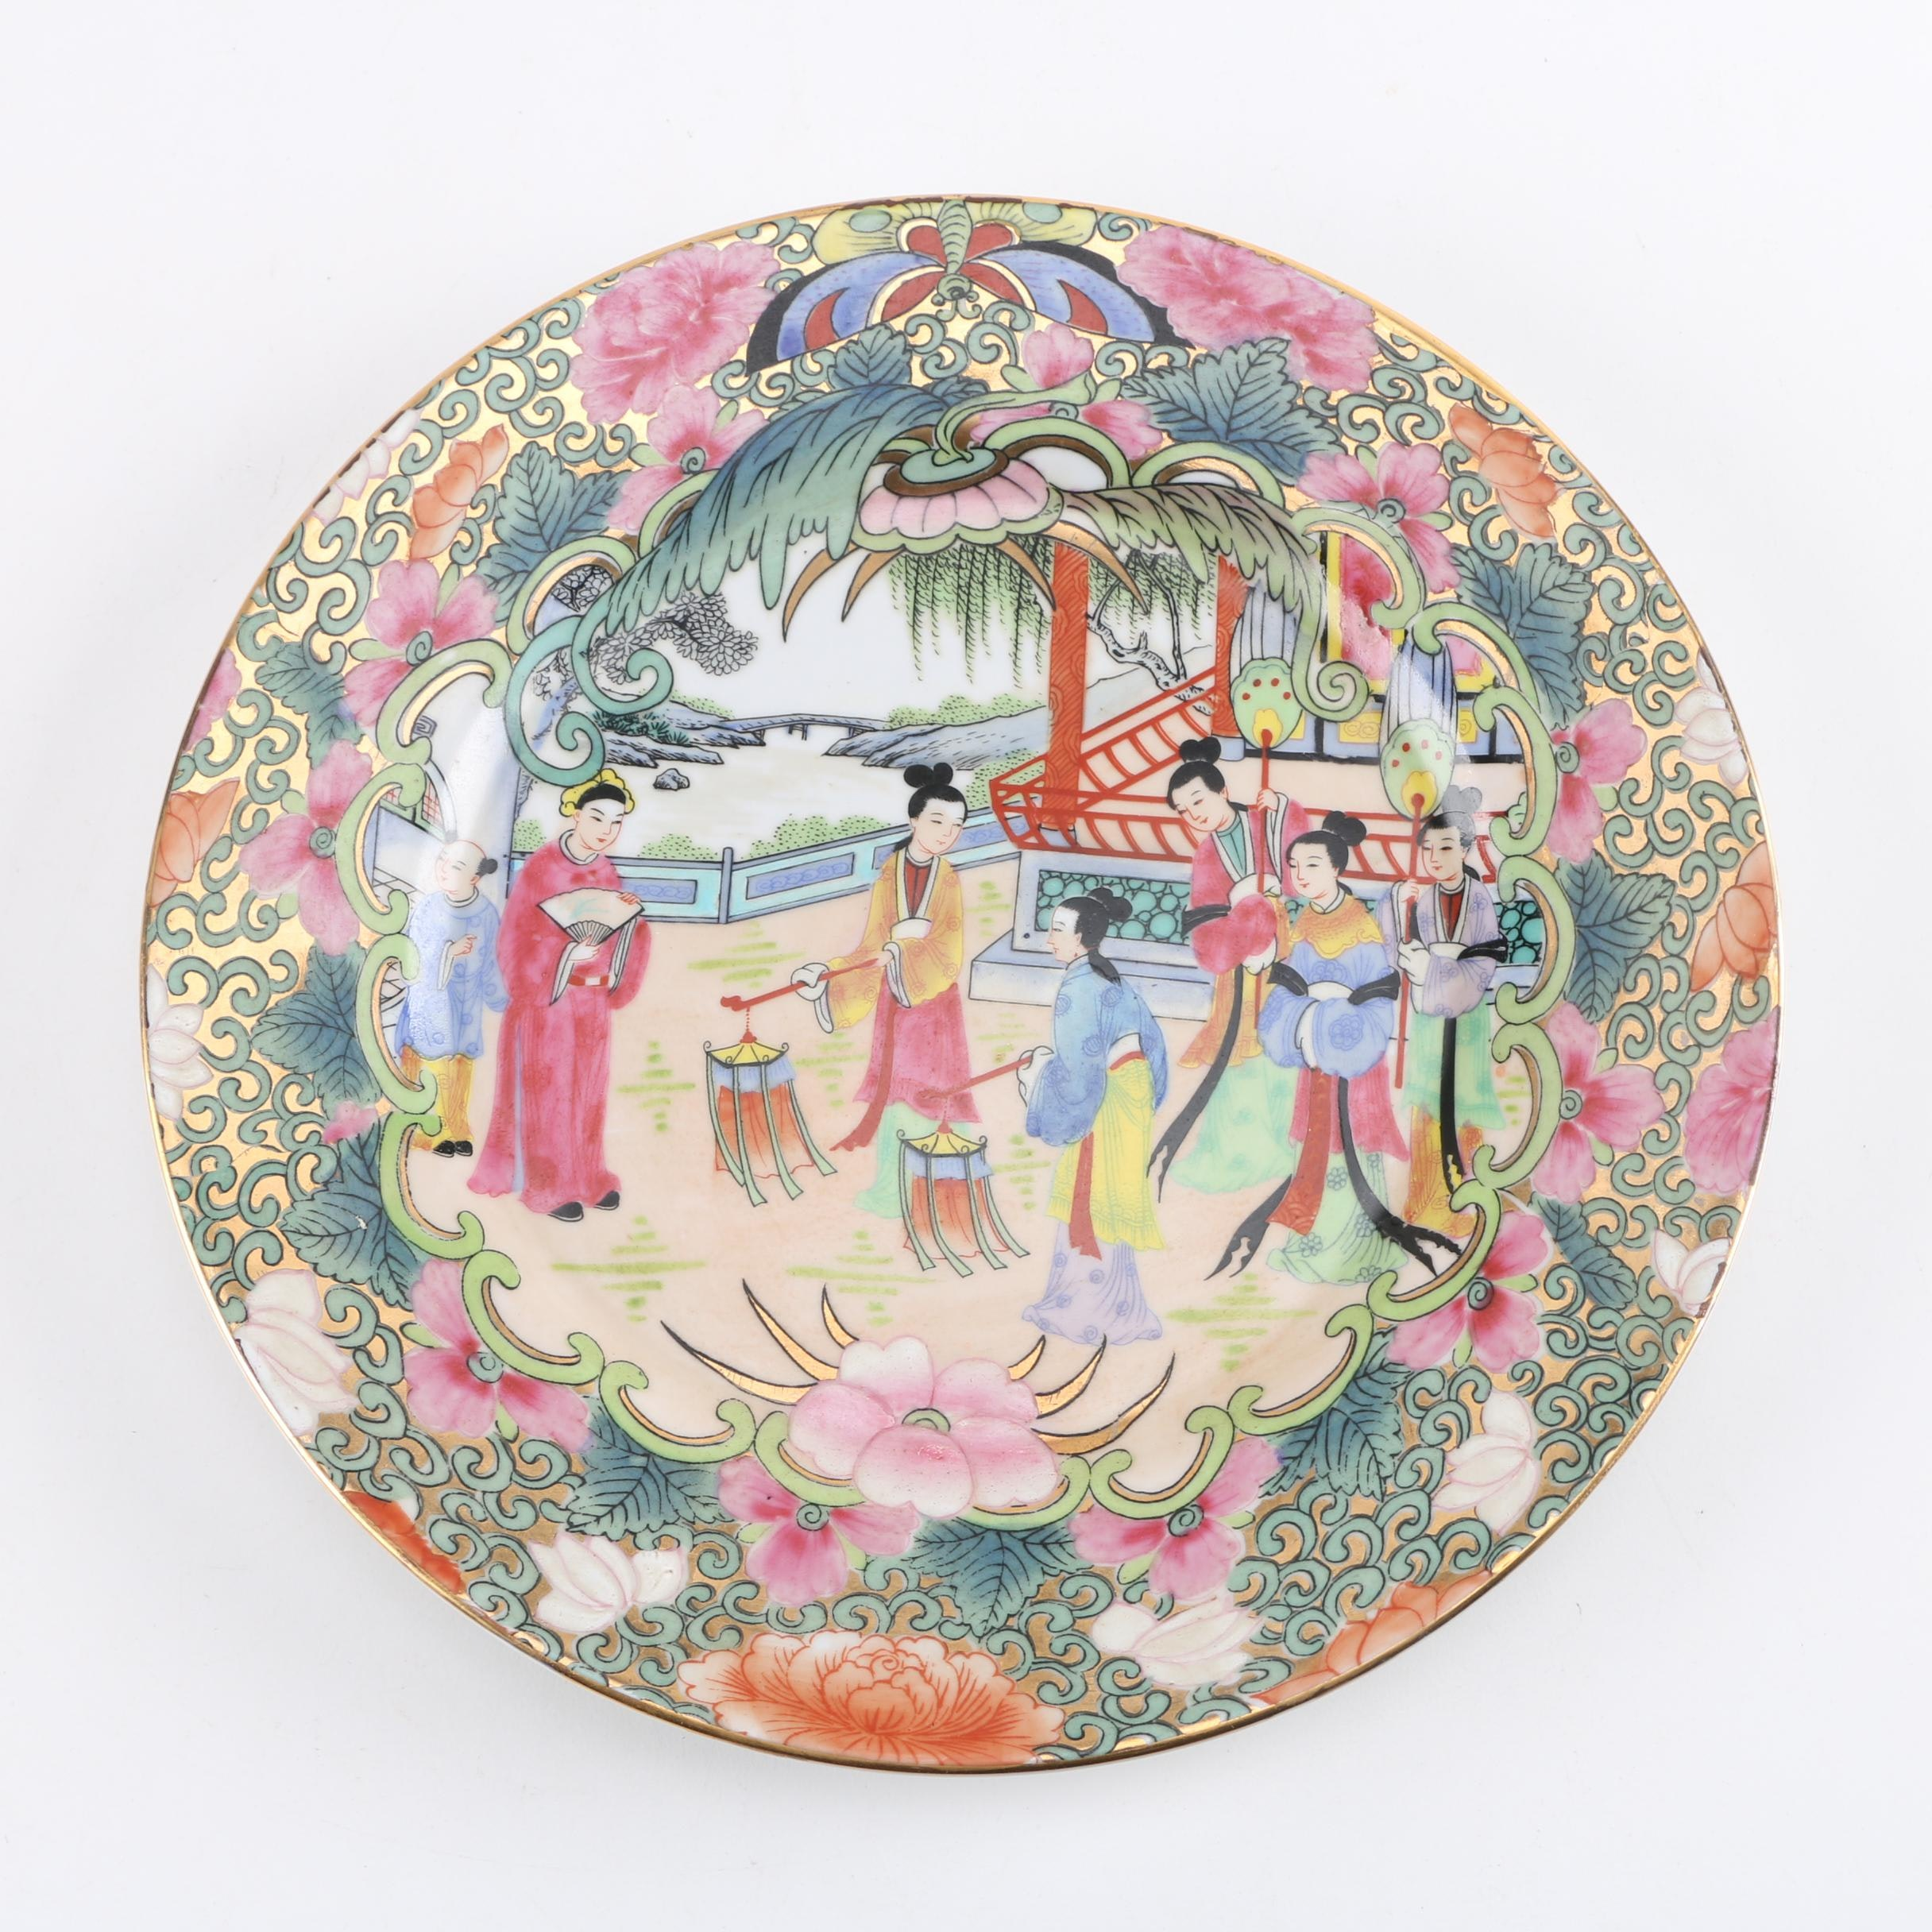 Chinese Decorative Ceramic Plate